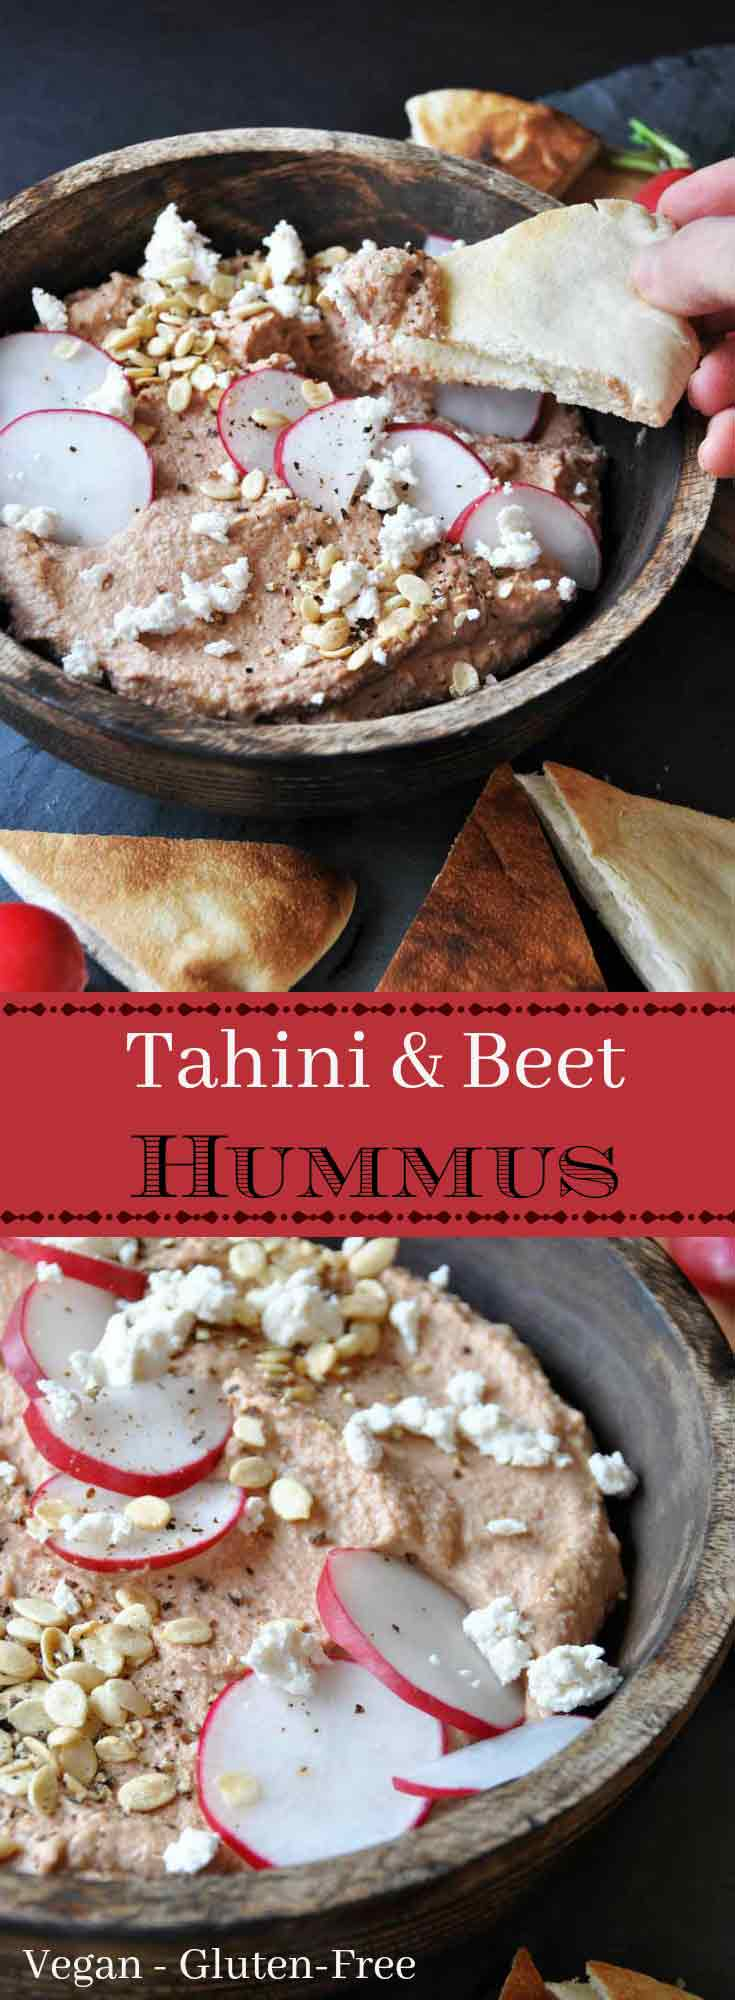 Tahini and roasted beet hummus! Vegan, gluten-free, and healthy. A high protein recipe. www.veganosity.com